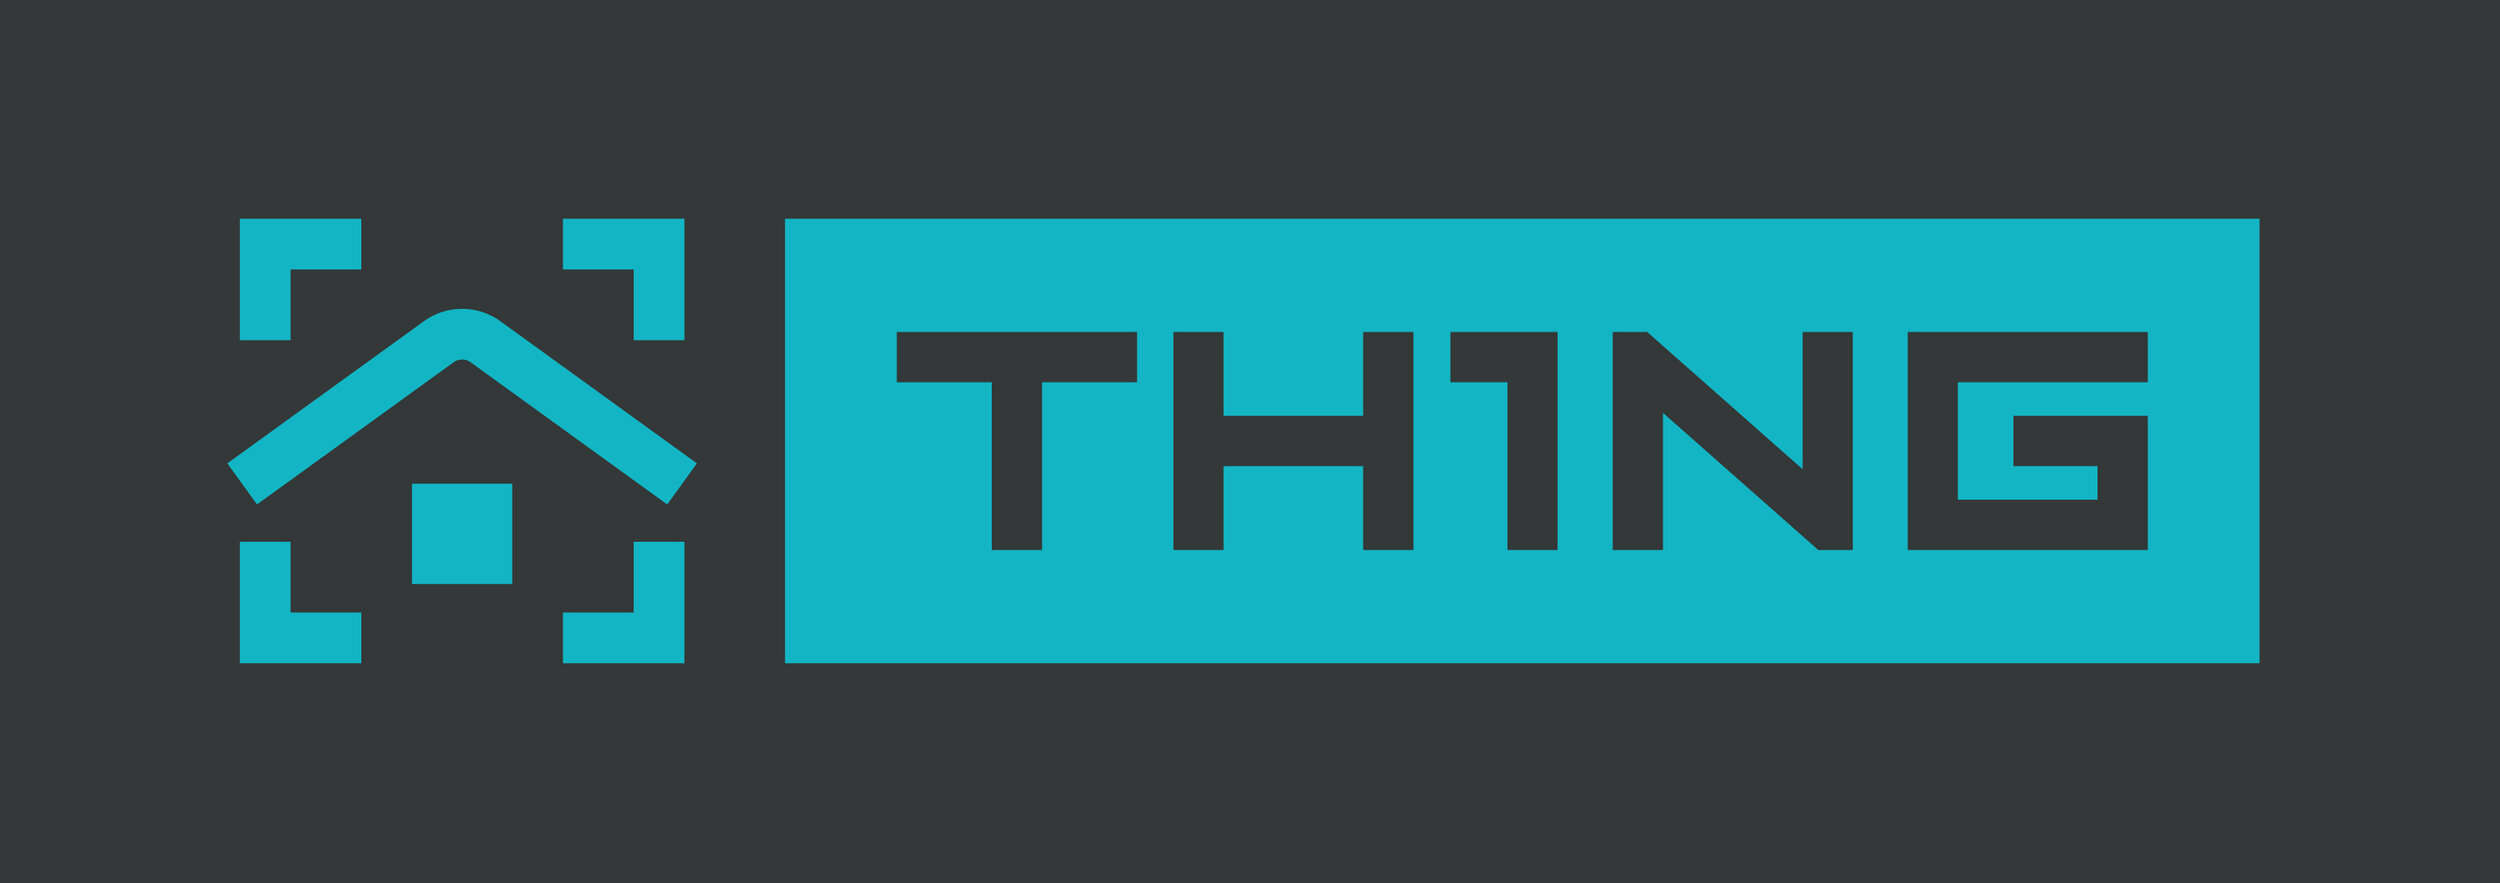 TH1NG_Logo_Turquoise on Dark Grey.jpg